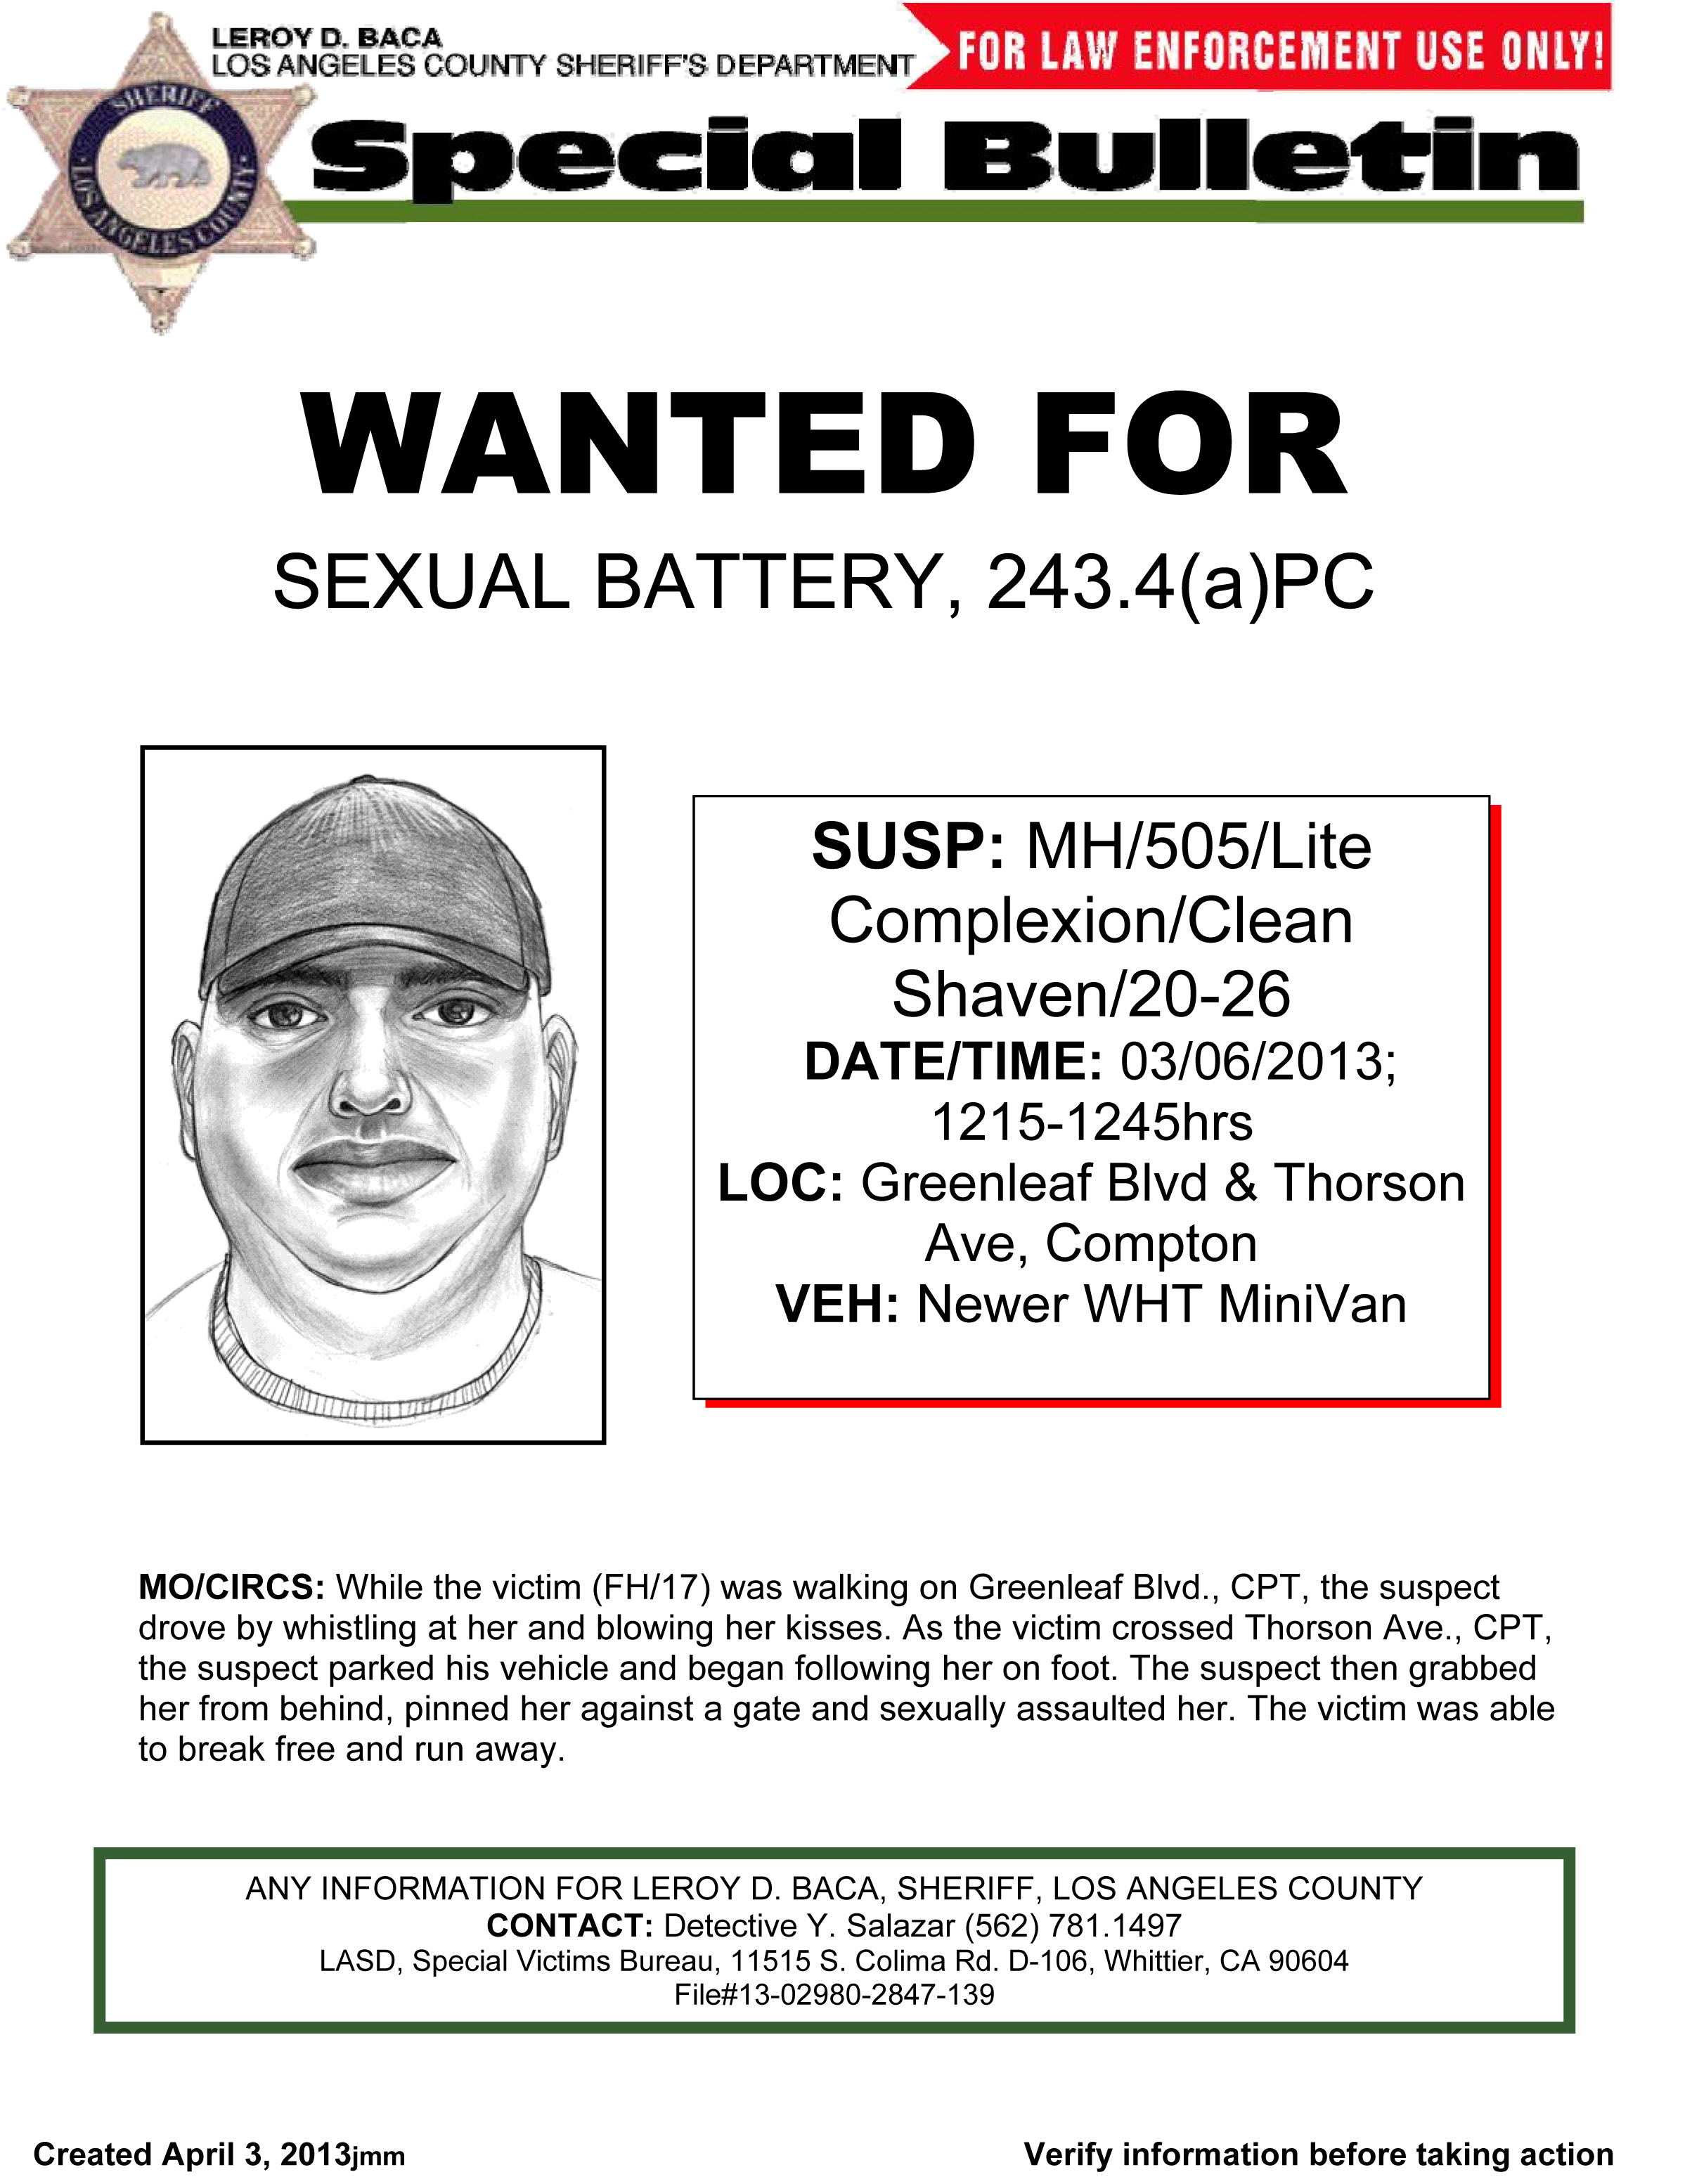 Wanted for Sexual Battery